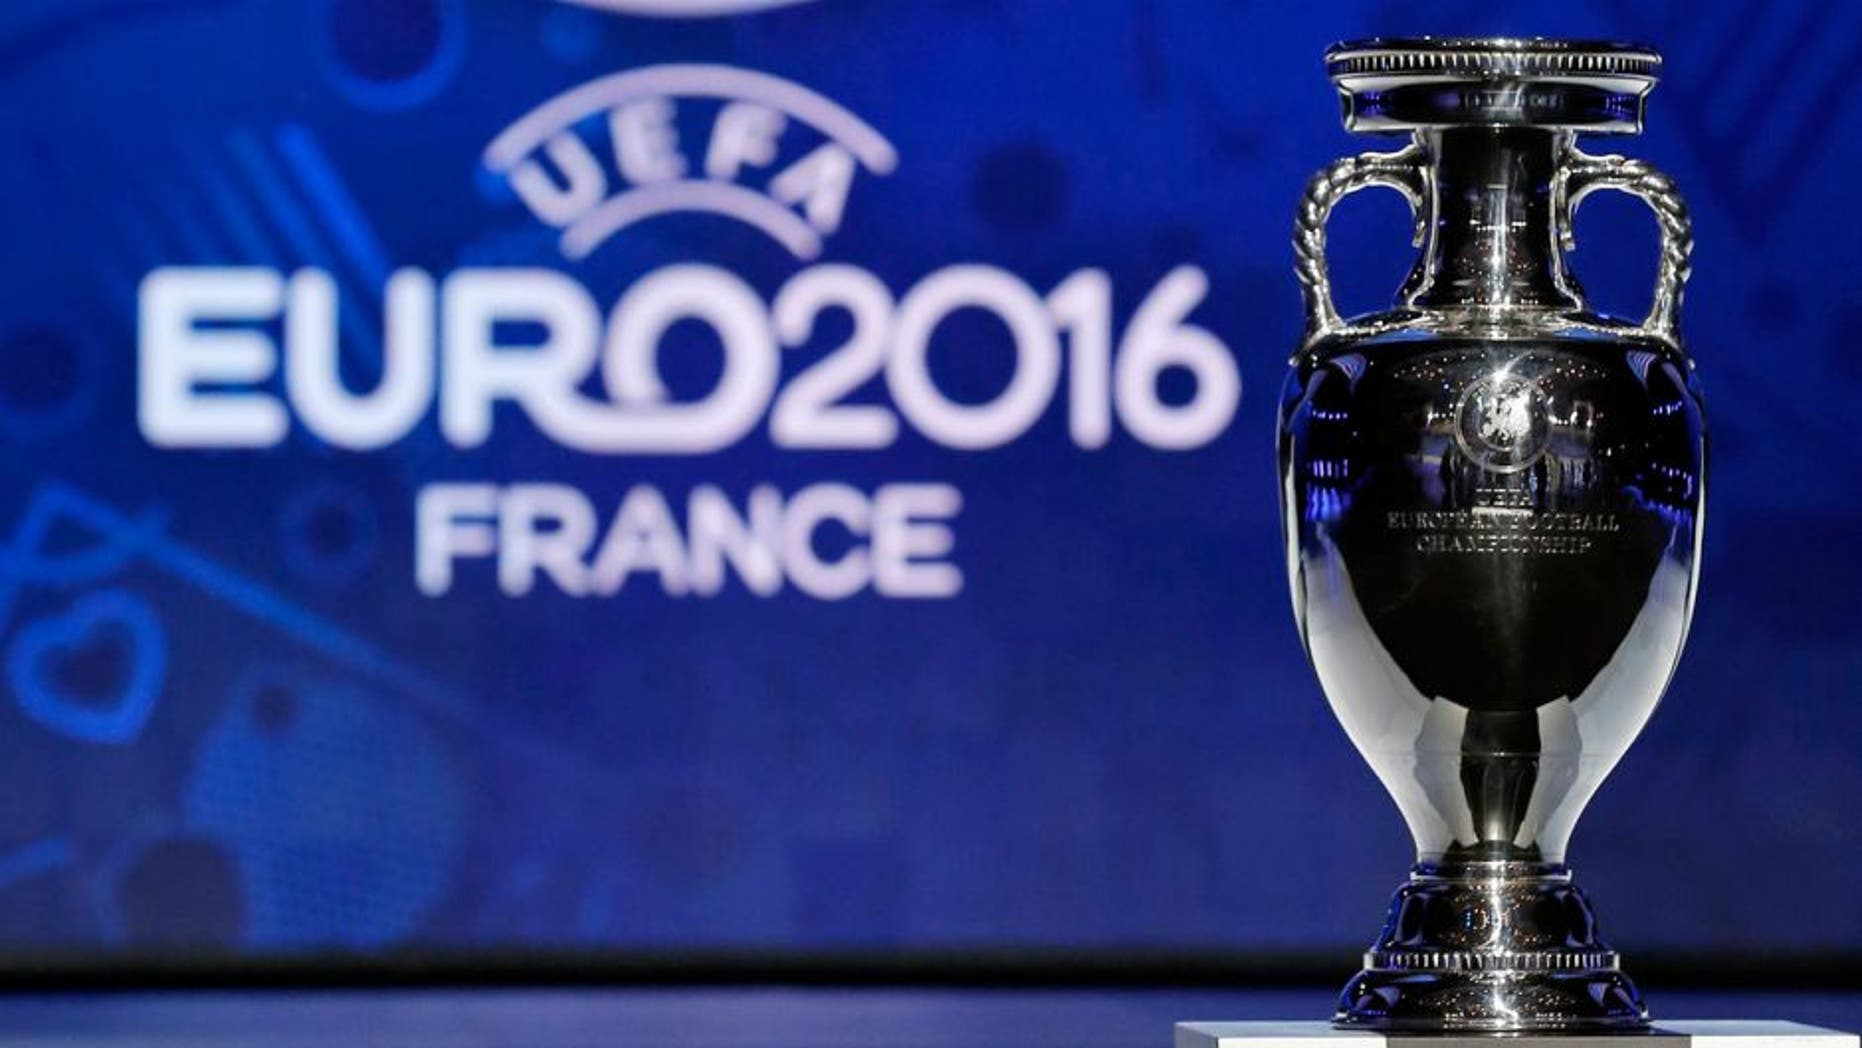 The trophy of the Euro 2016 is seen before the UEFA Euro 2016 qualifying draw in Nice, February 23, 2014. The 53 teams will be split into eight groups of six and one group of five. The top two sides in each group plus the best third-placed team will qualify directly for Euro 2016 in France. The UEFA Euro 2016 will be held in France from June 10 to July 10 2016. REUTERS/Jean-Paul Pelissier (FRANCE - Tags: SPORT SOCCER) Picture Supplied by Action Images